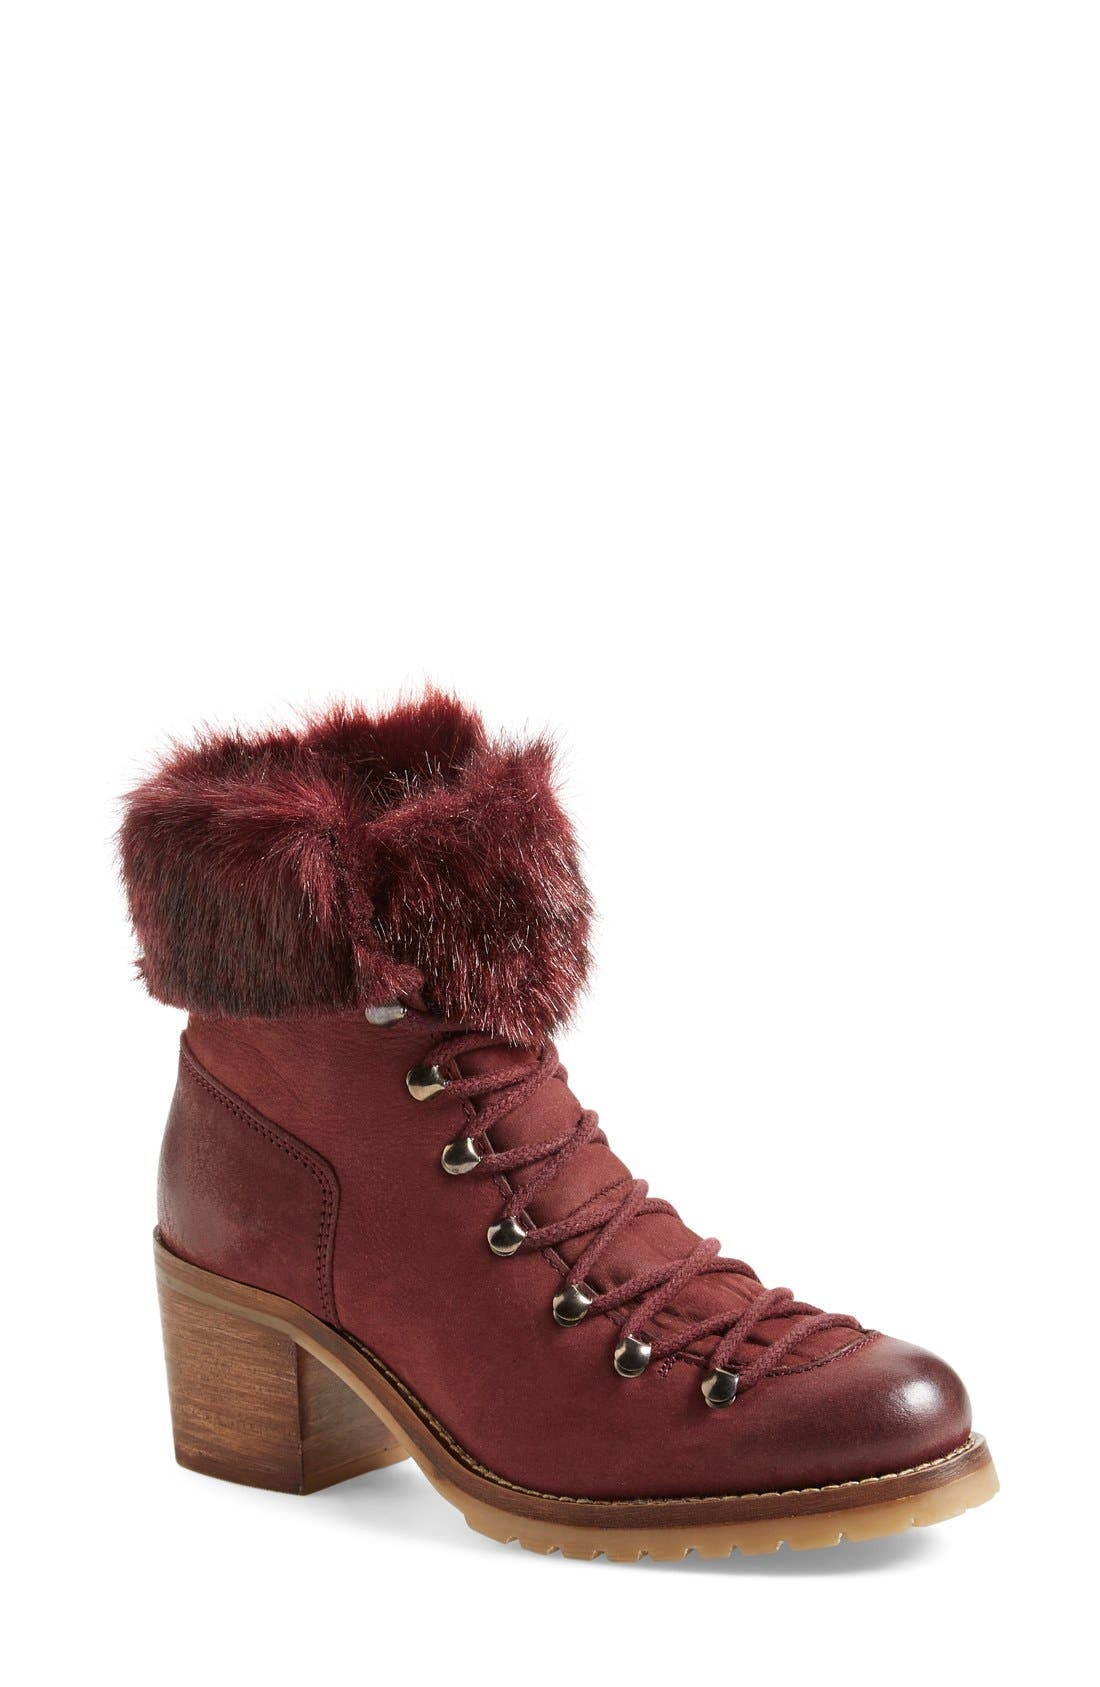 Alternate Image 1 Selected - Steve Madden 'Huck' Lace-Up Bootie (Women)